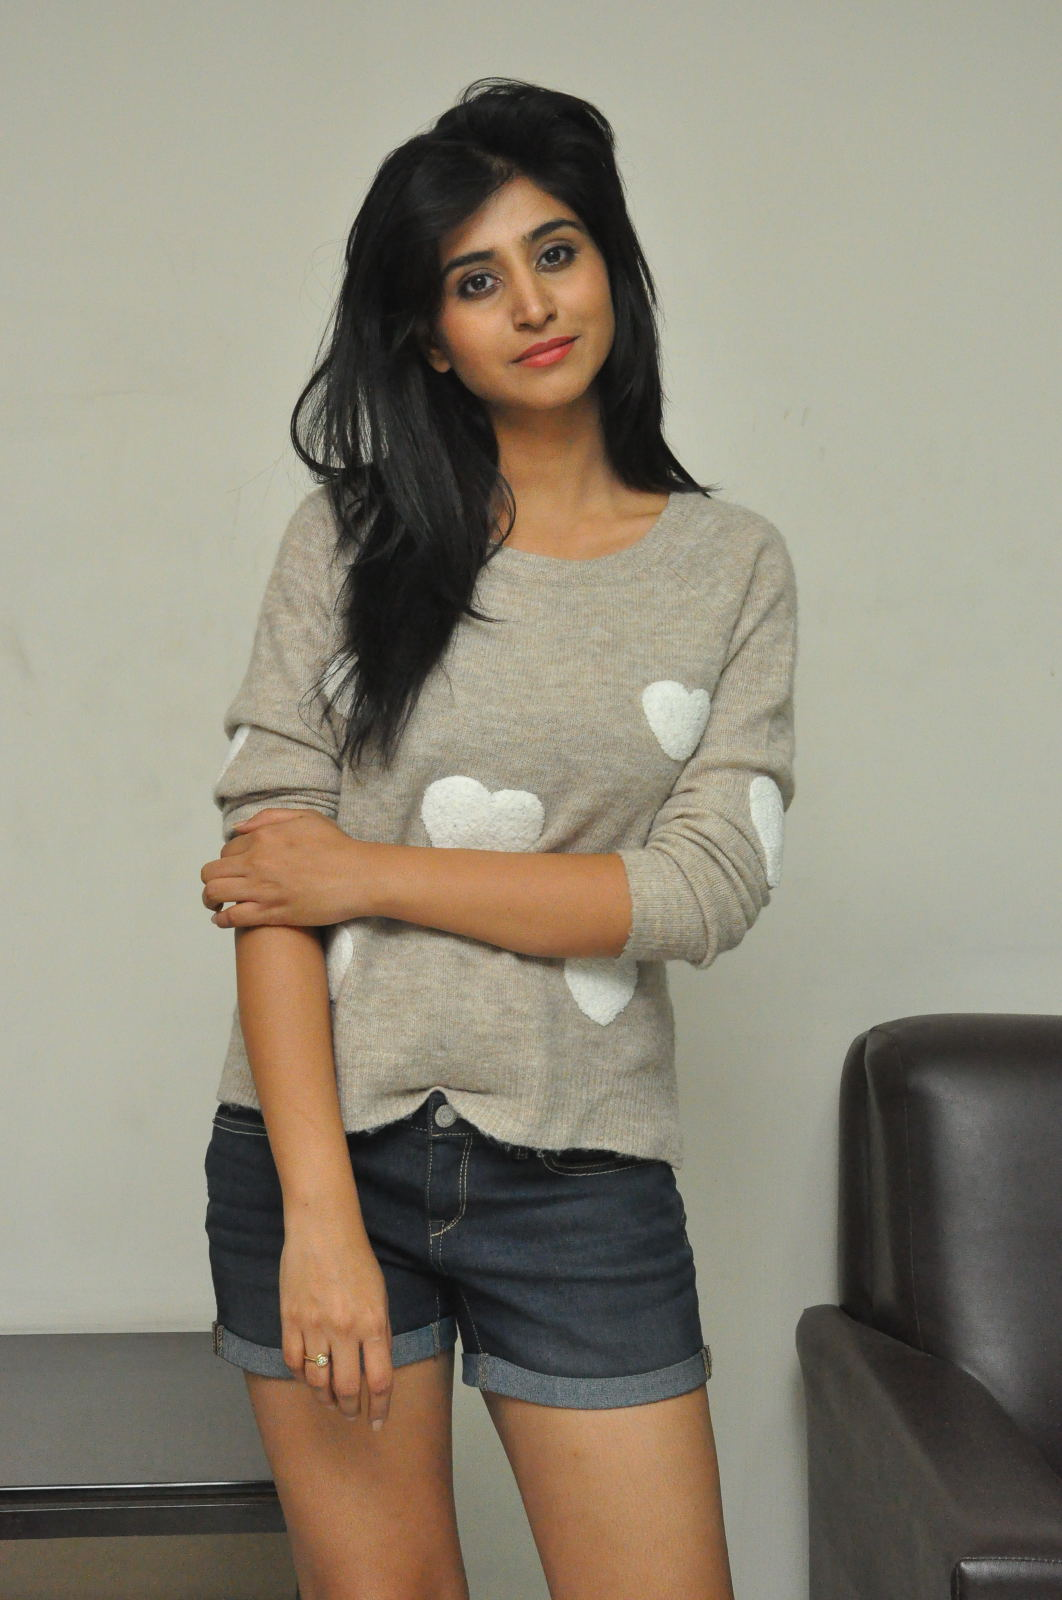 Shamili new cute photos gallery-HQ-Photo-7